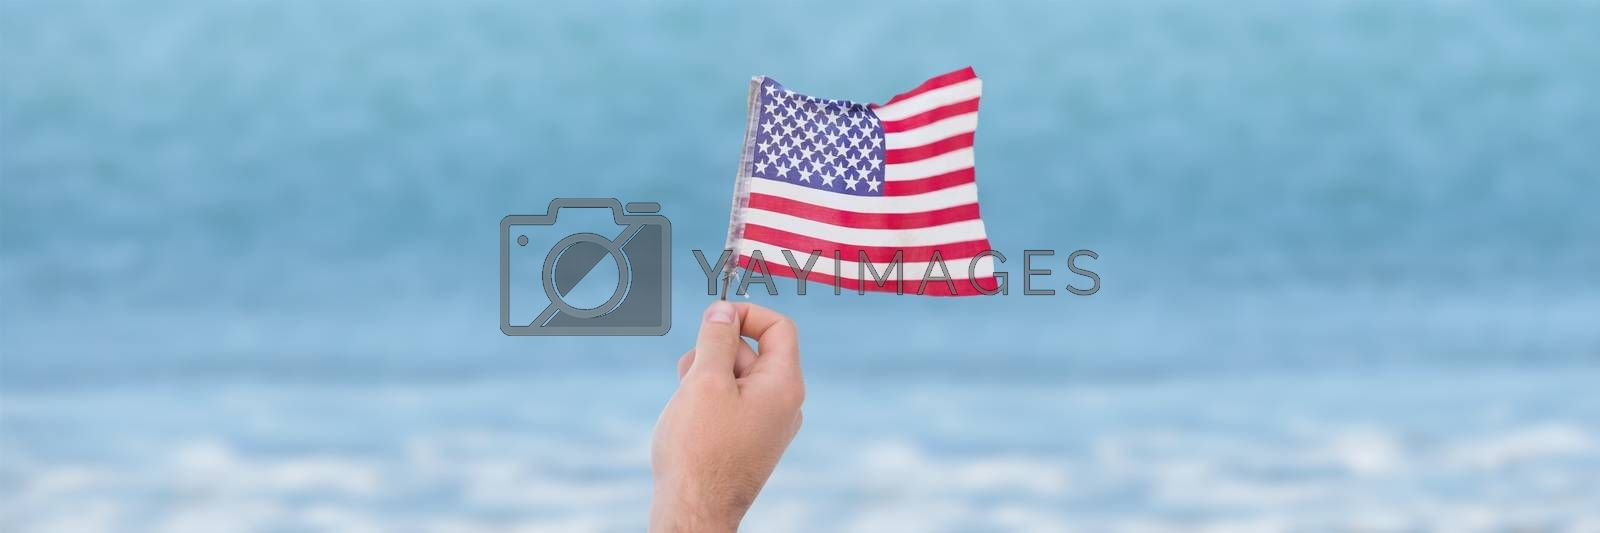 Person holding USA flag against sea background by Wavebreakmedia